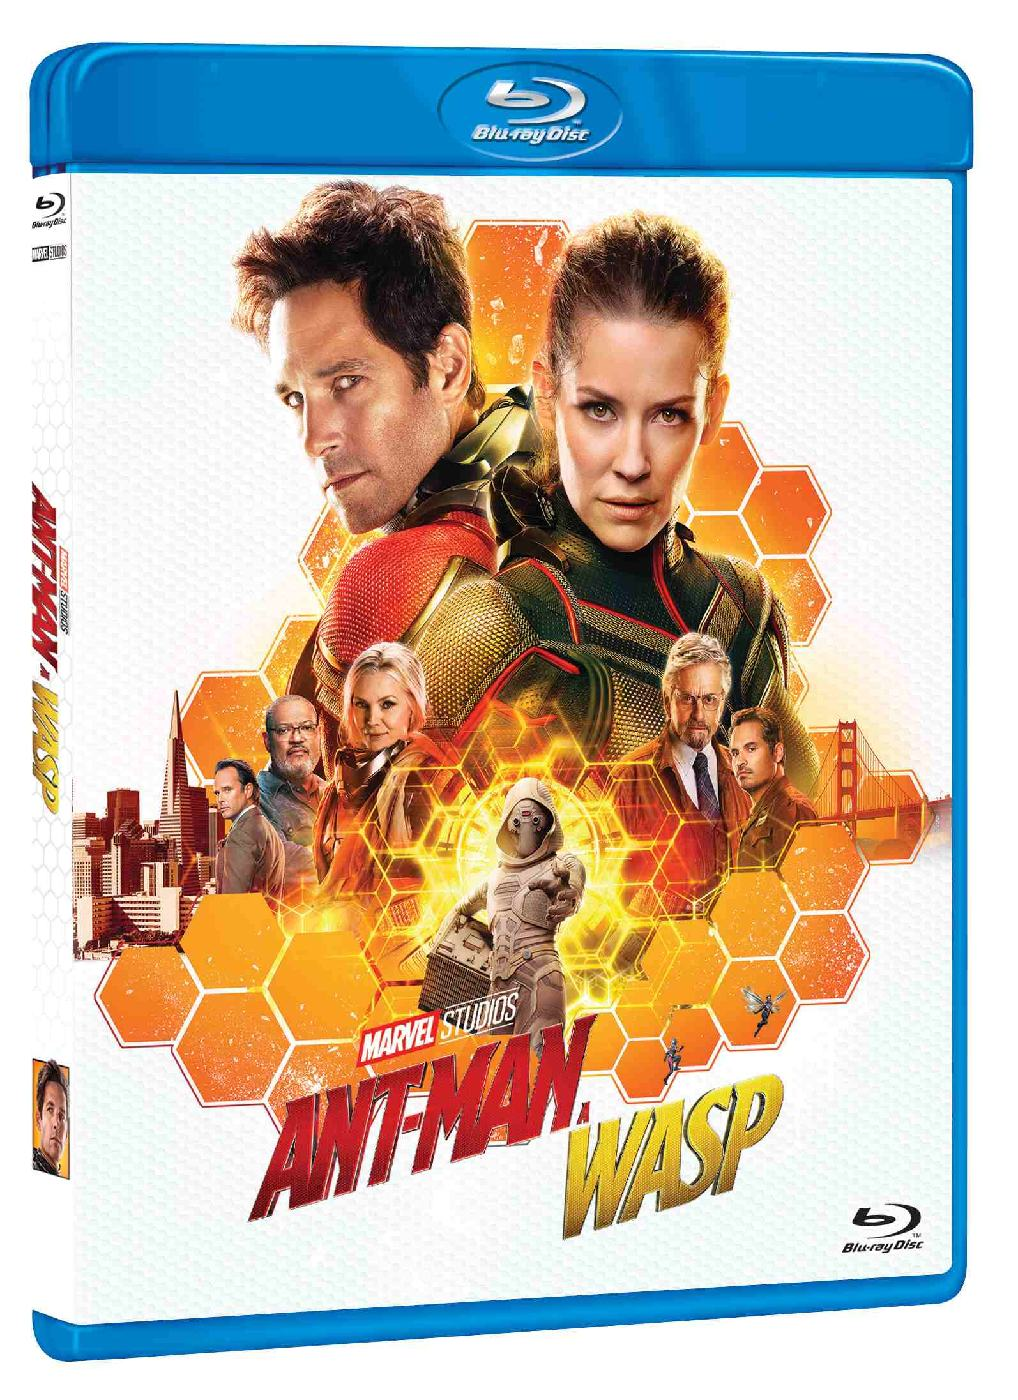 náhled Ant-Man a Wasp - Blu-ray